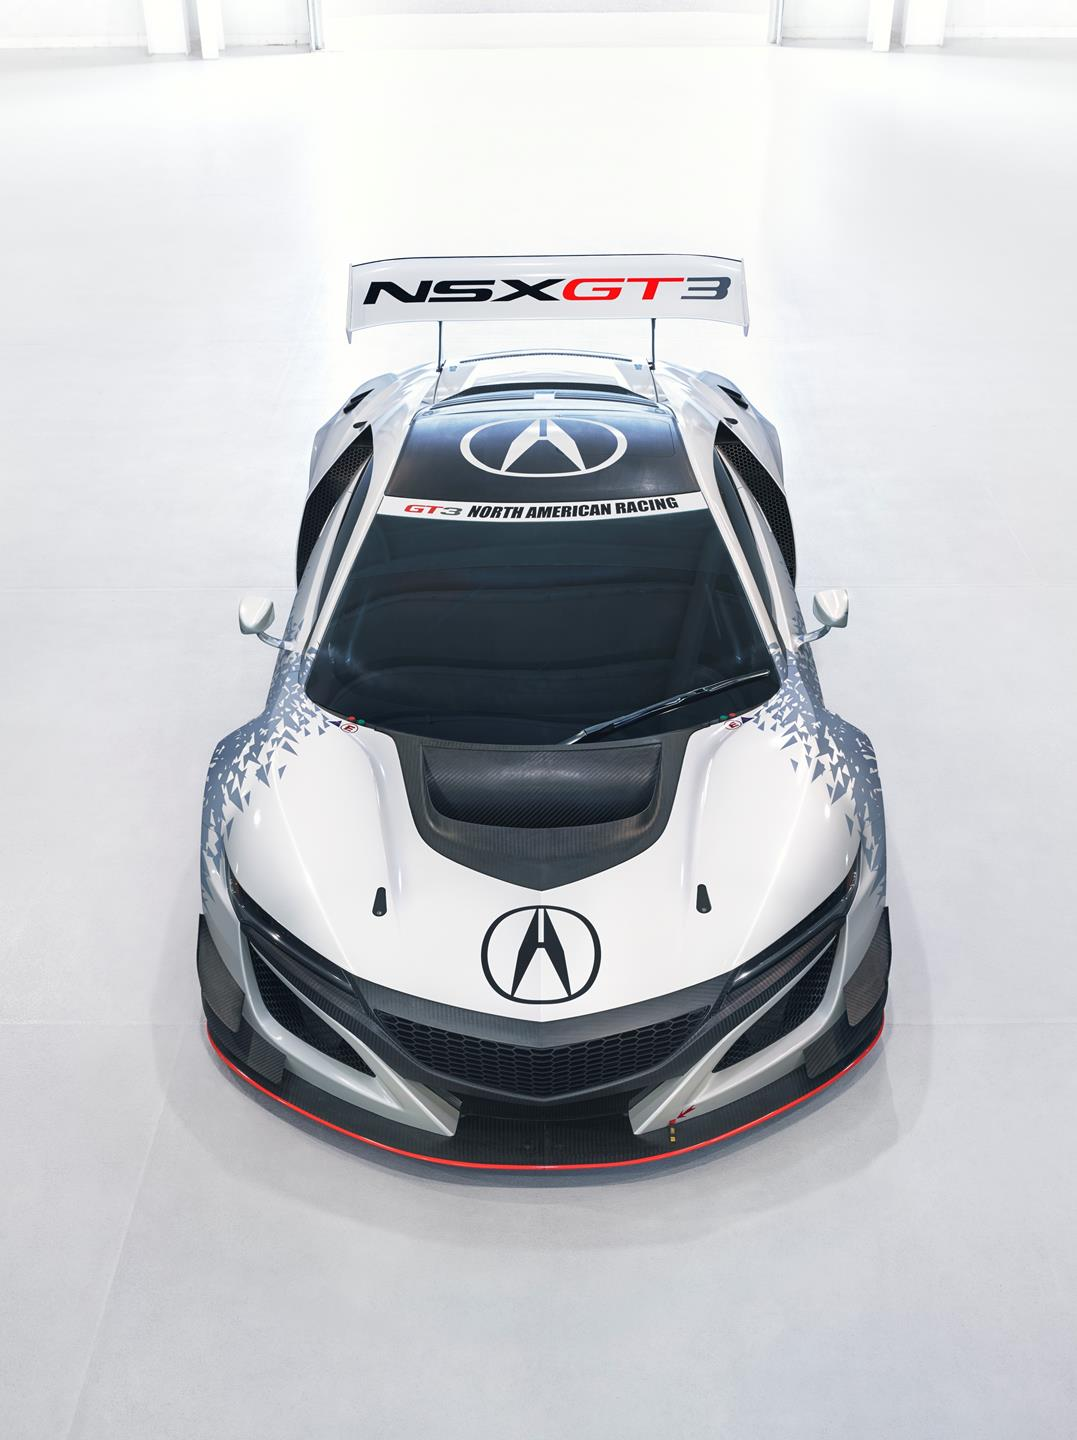 2017 Acura NSX GT3 Image